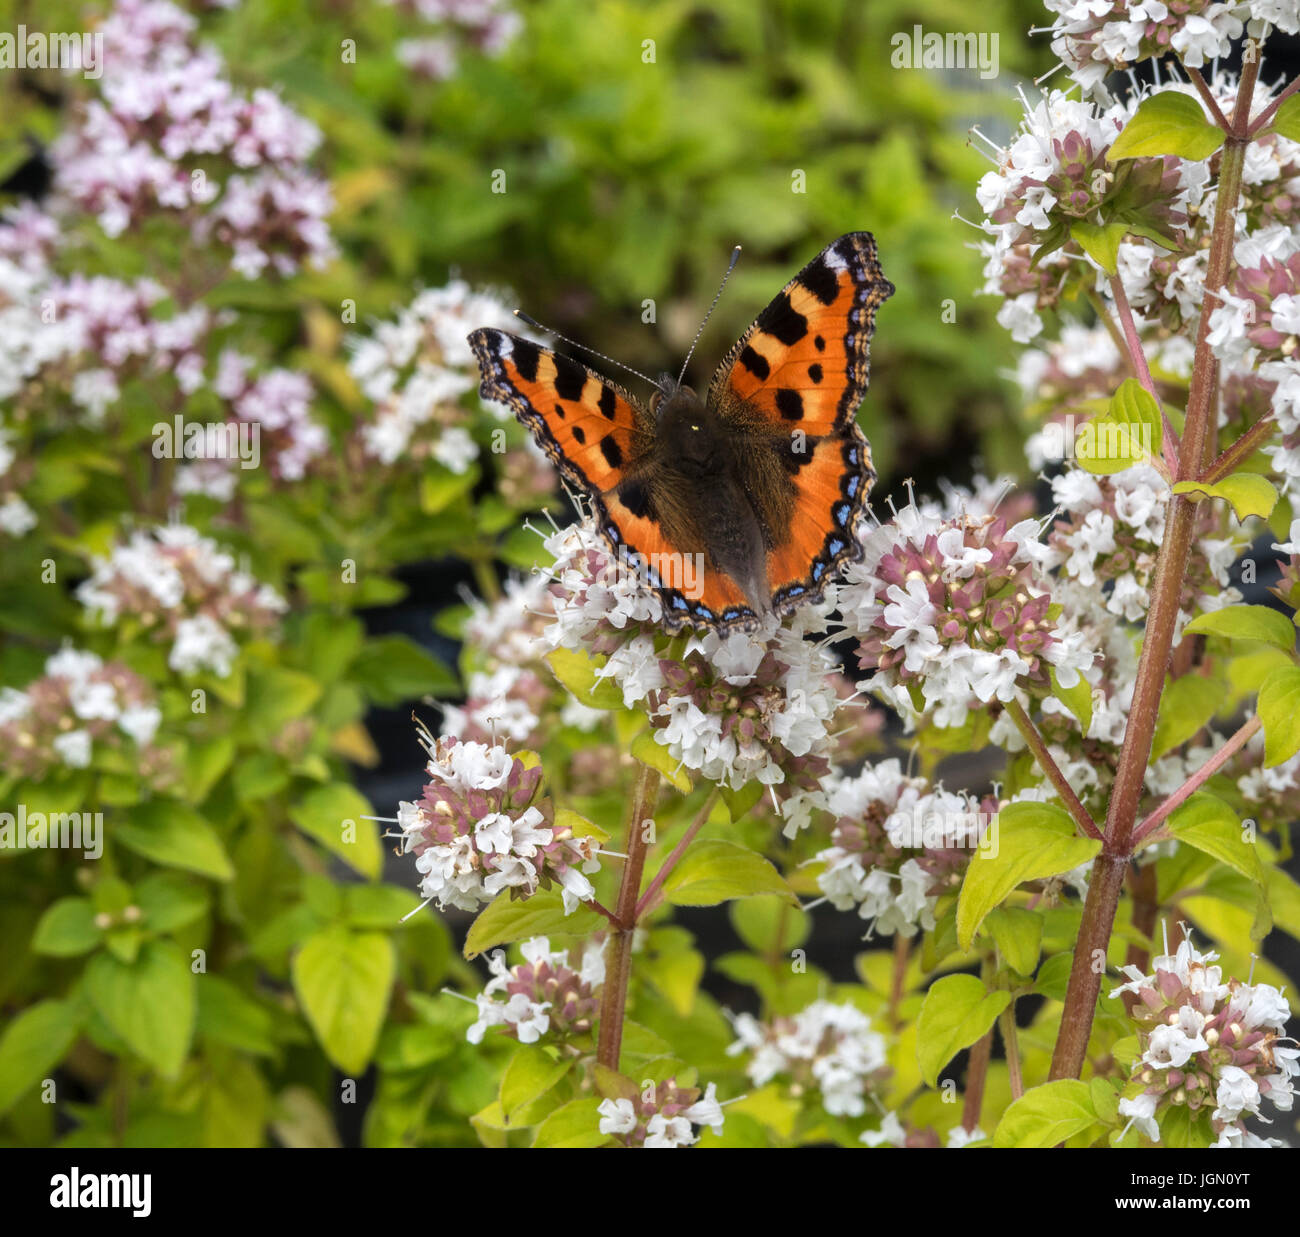 Small Tortoiseshell butterfly, Aglais urticae, in an English garden. - Stock Image